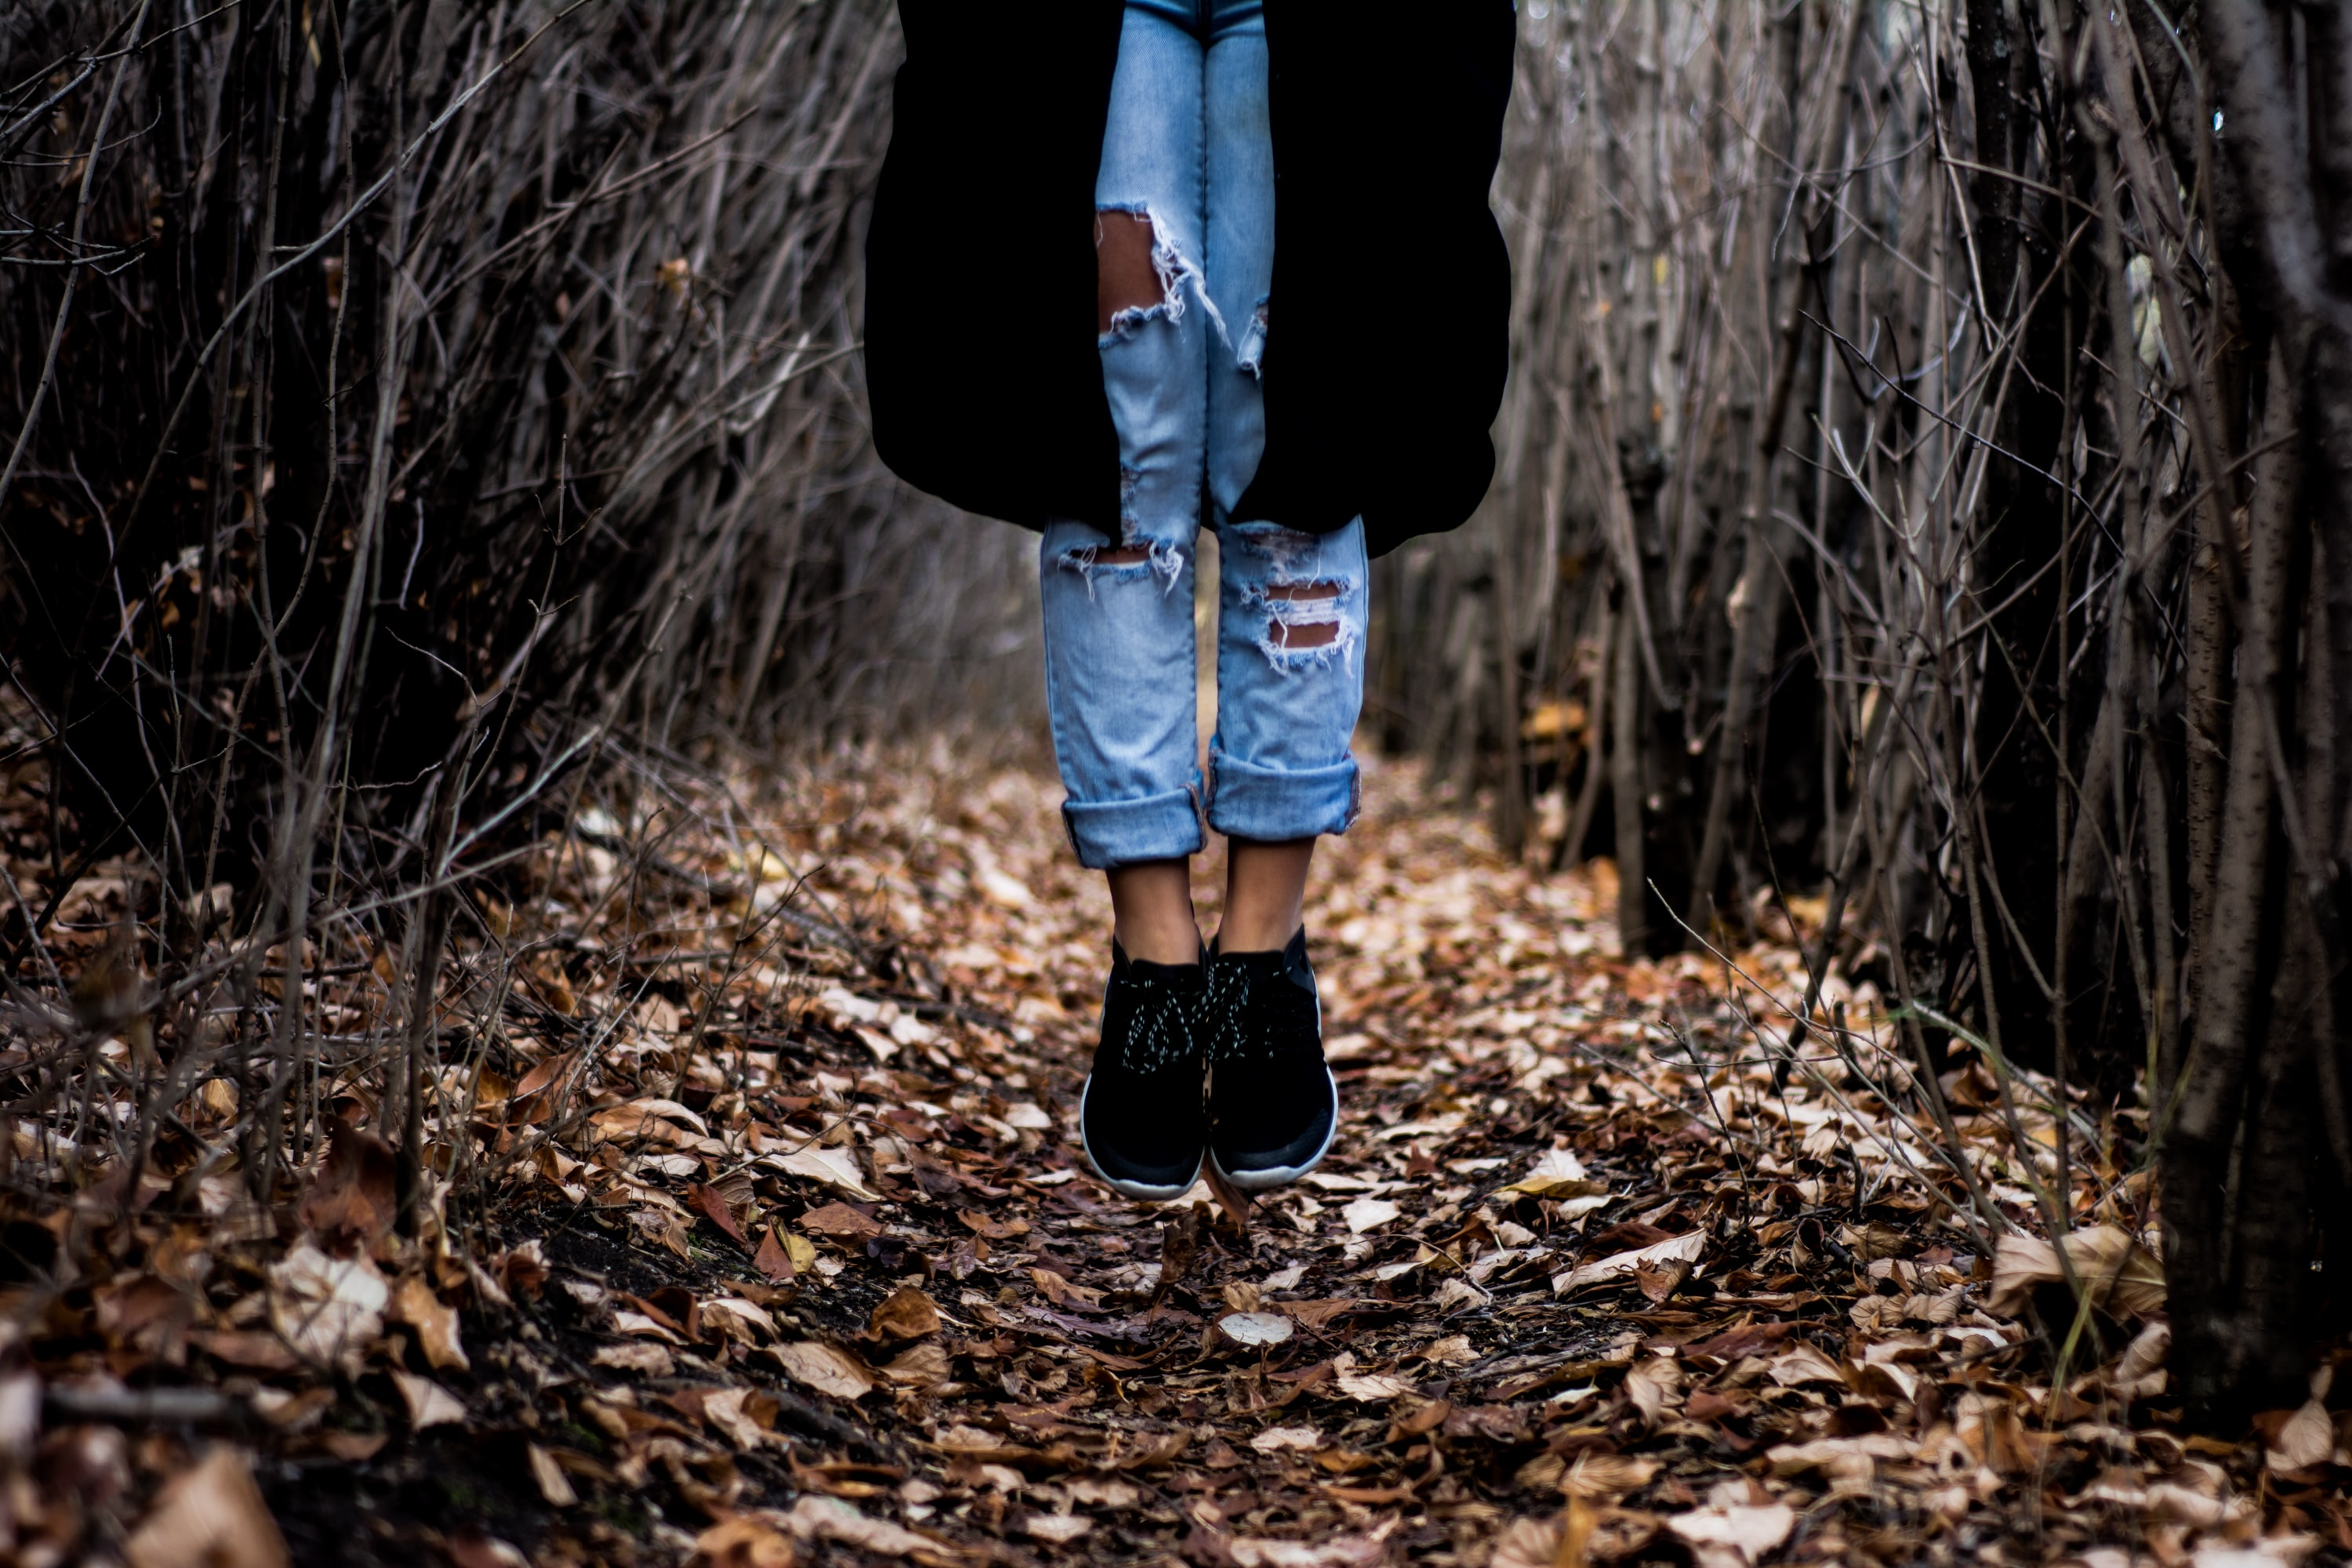 A person in ripped jeans jumping up on a carpet of autumn leaves in a thicket